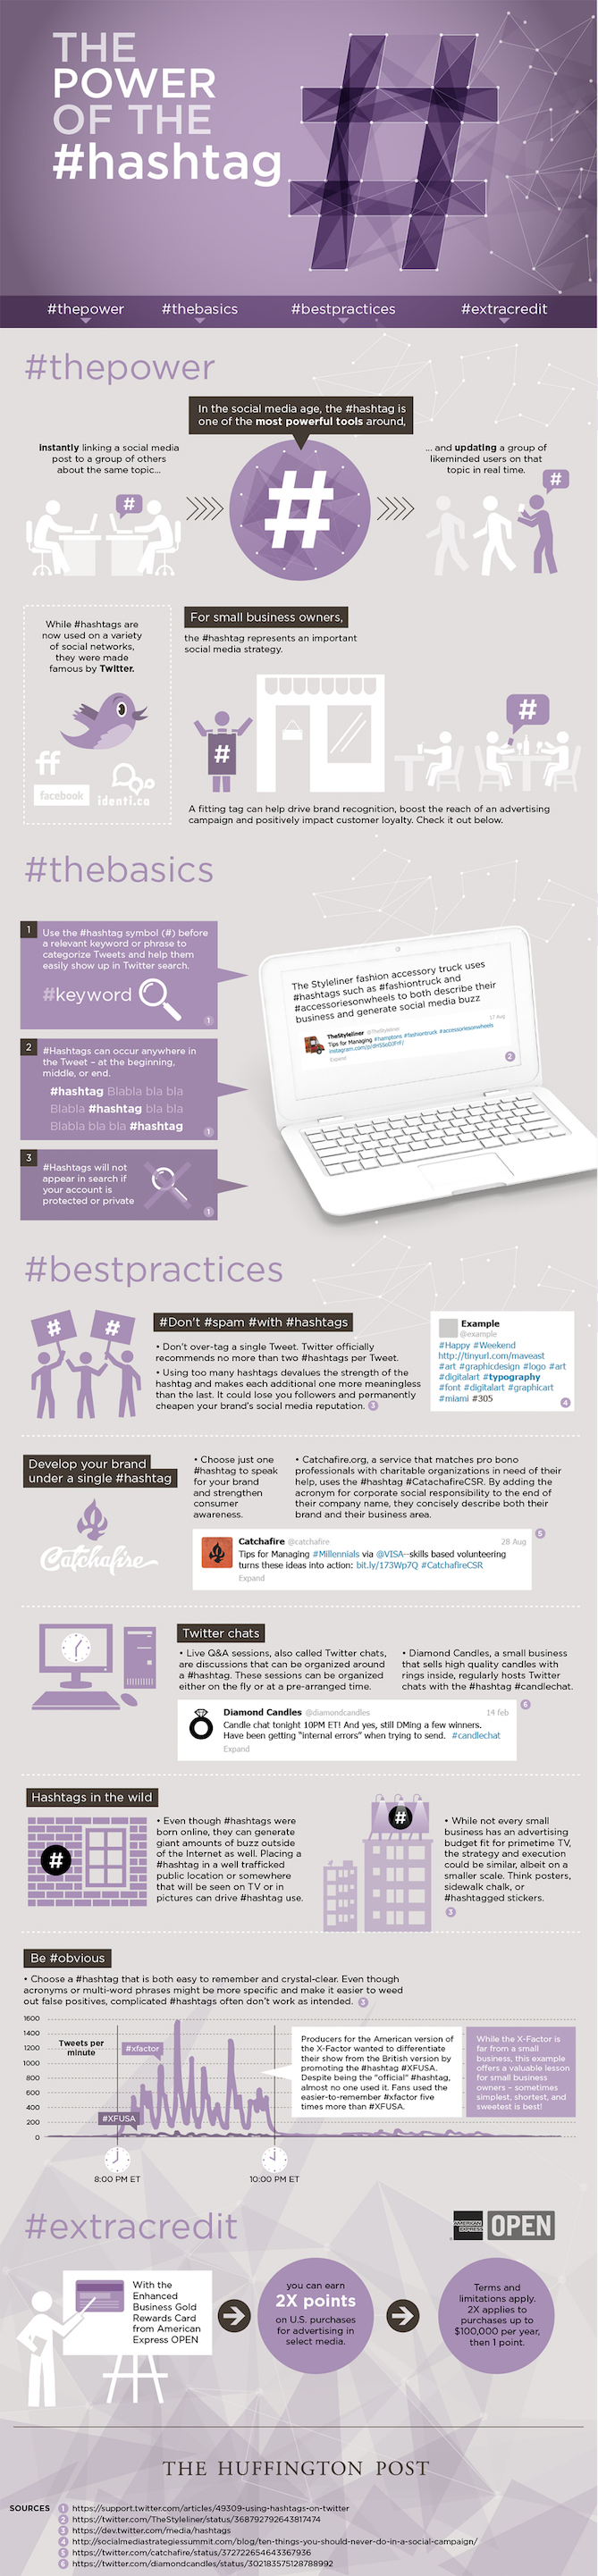 power-of-hashtag-infographic